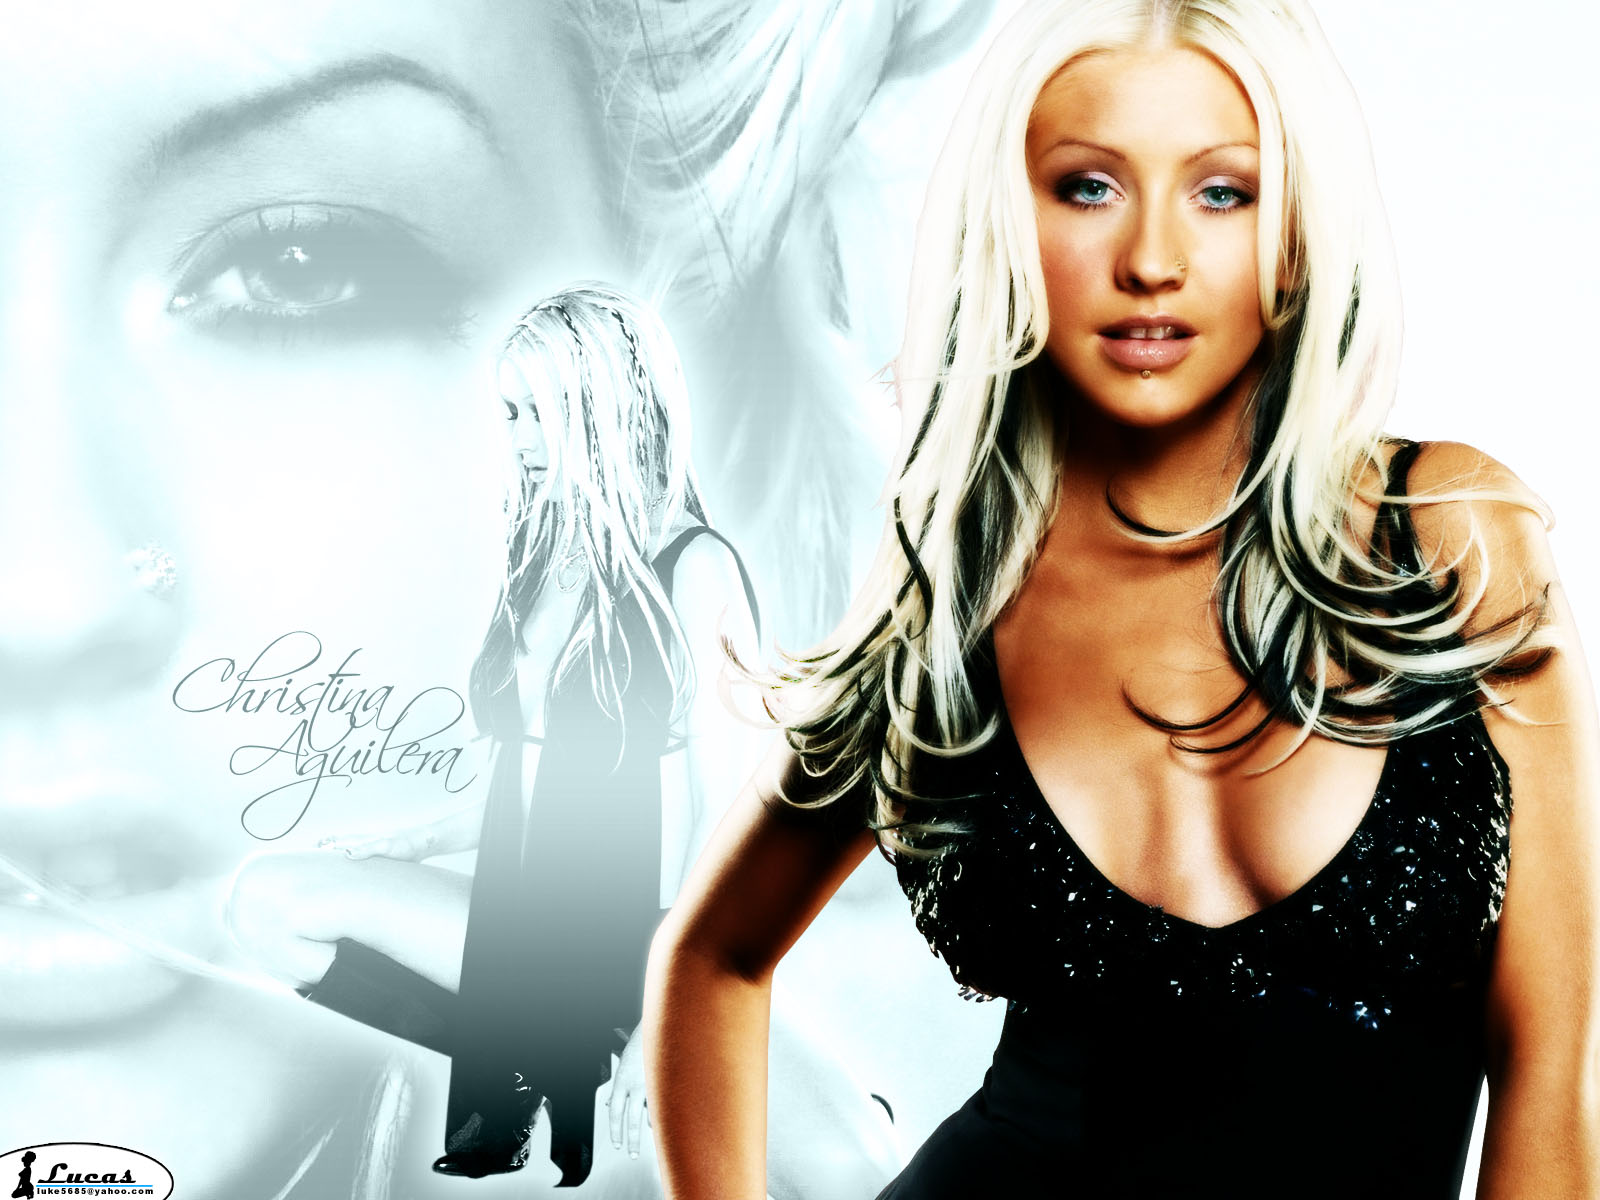 http://2.bp.blogspot.com/-ebA4Aaw3SXk/TjPd6yBnEeI/AAAAAAAADZ0/mIrUmlTlKbE/s1600/The-best-top-desktop-christina-aguilera-wallpapers-20-christina-aquilera-wears-black-dress-wallpaper.jpg